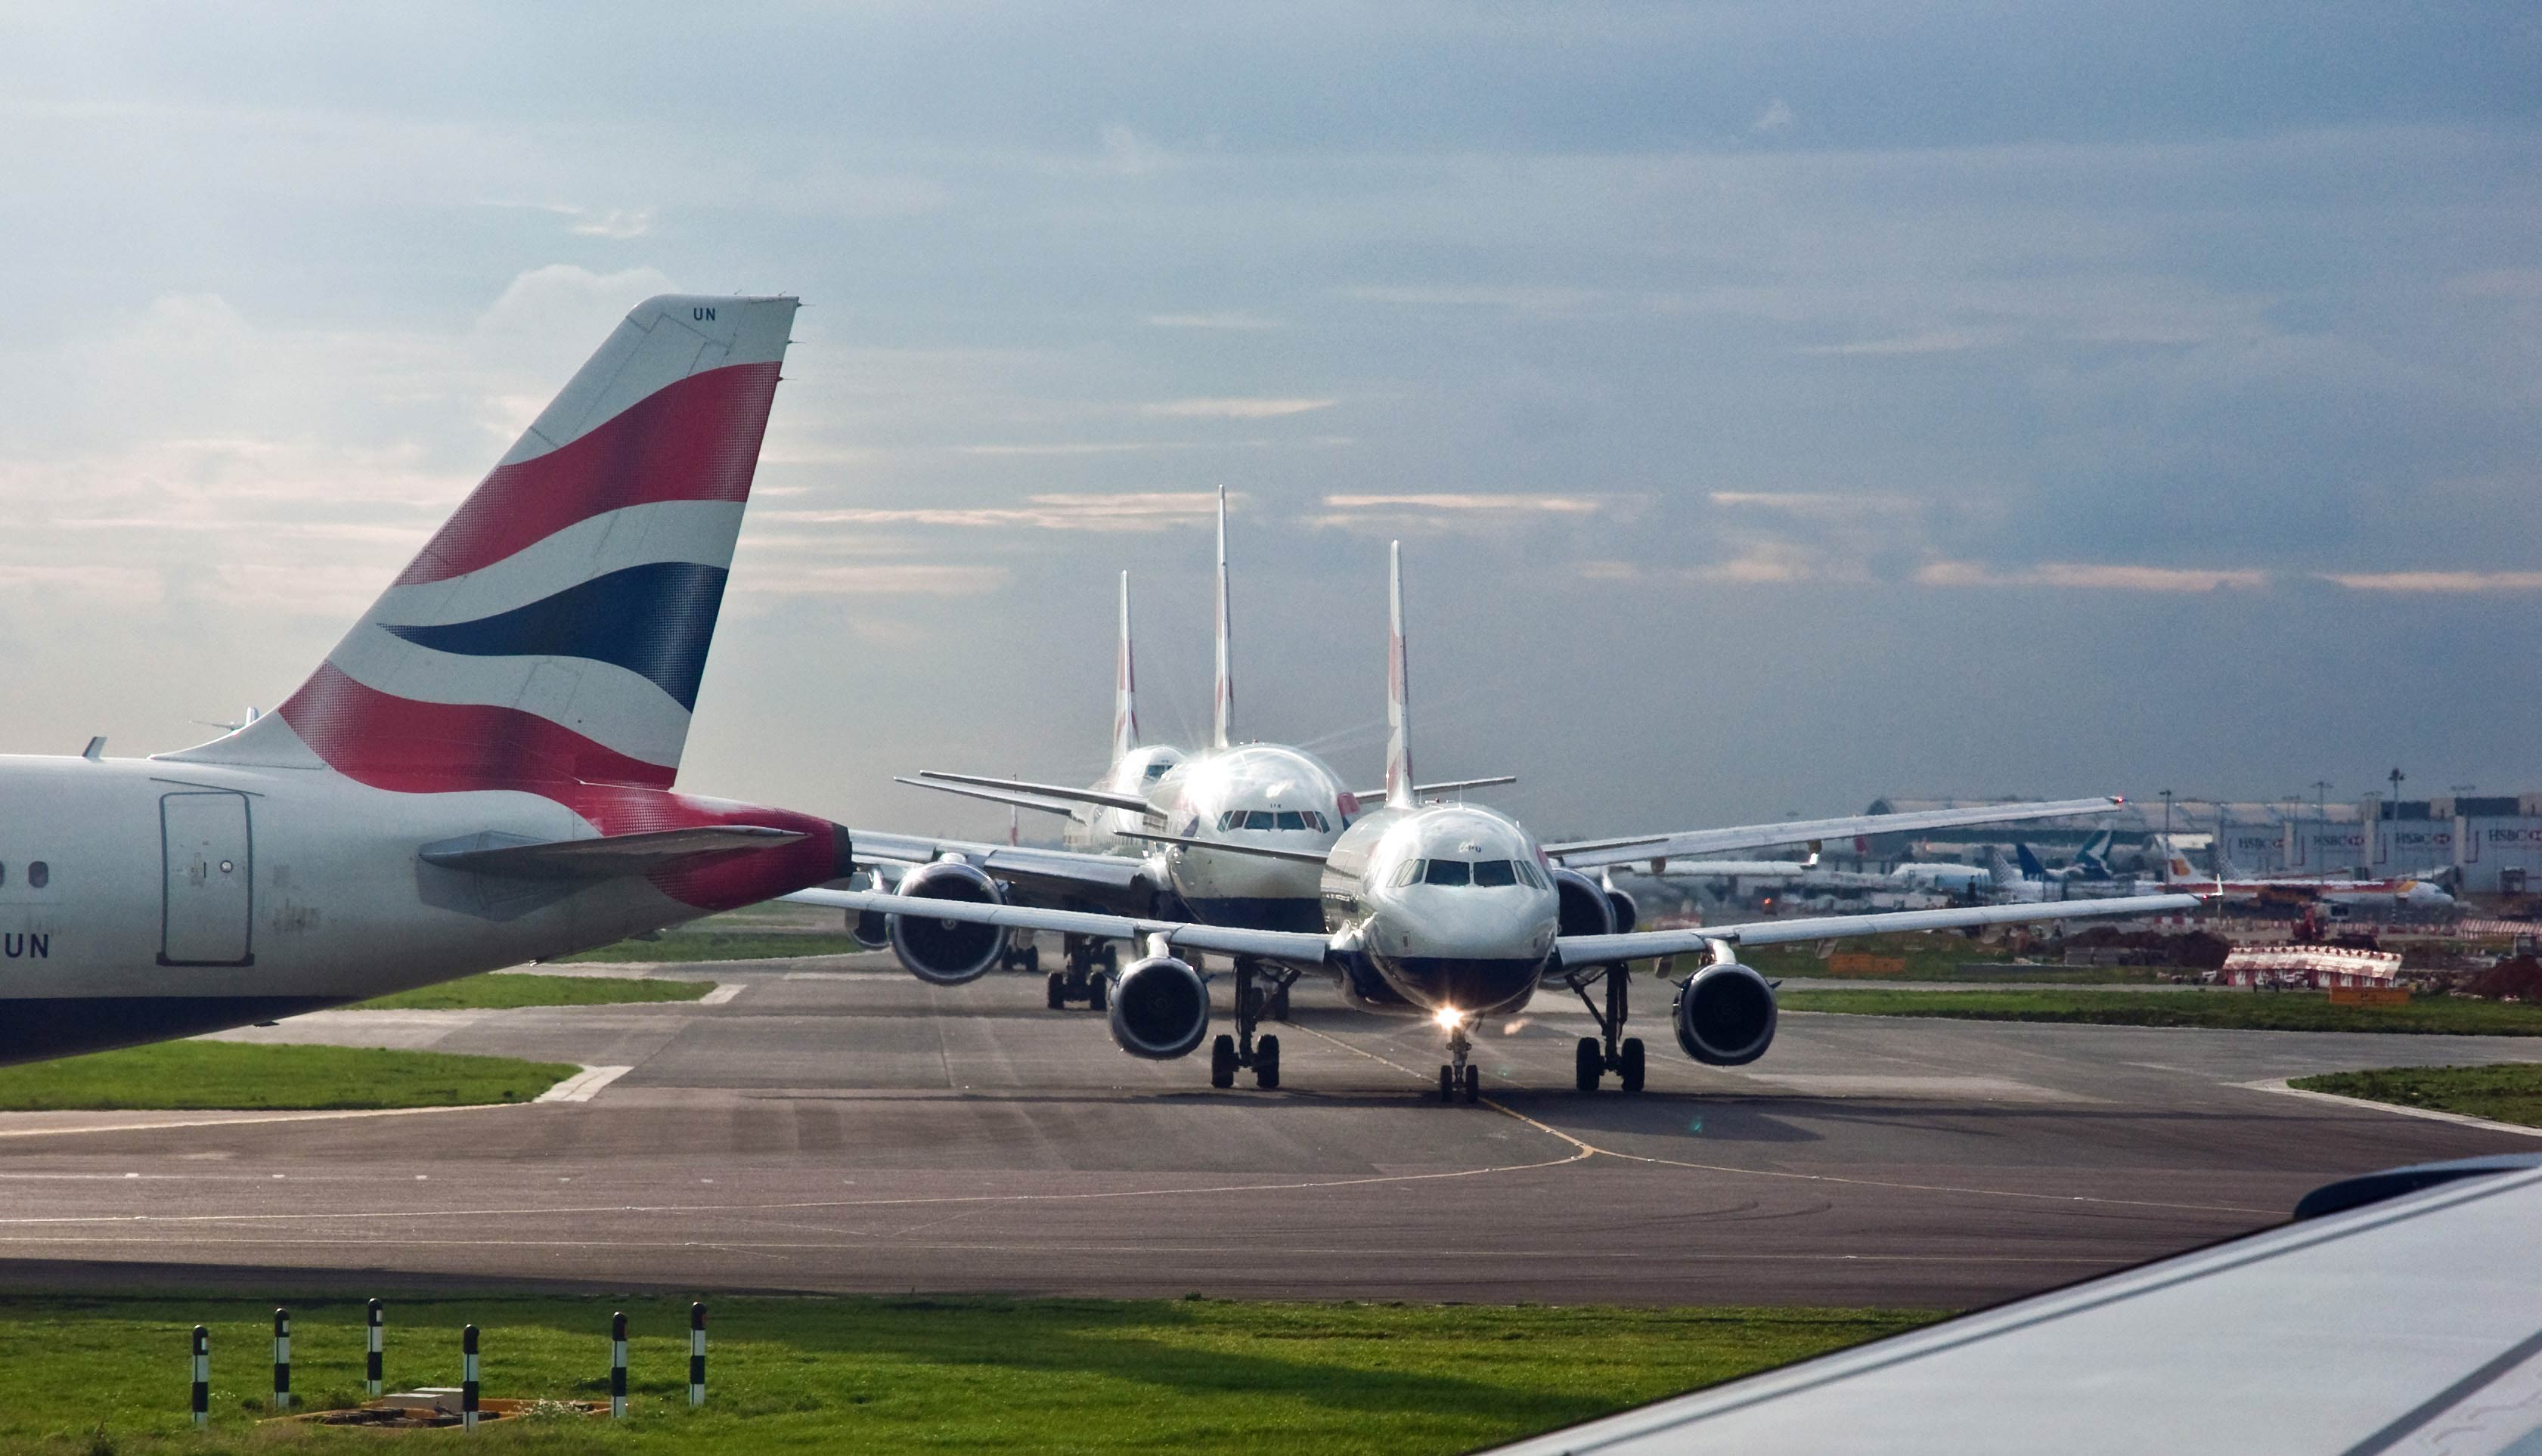 Planes lining up on a runway at Heathrow Airport.